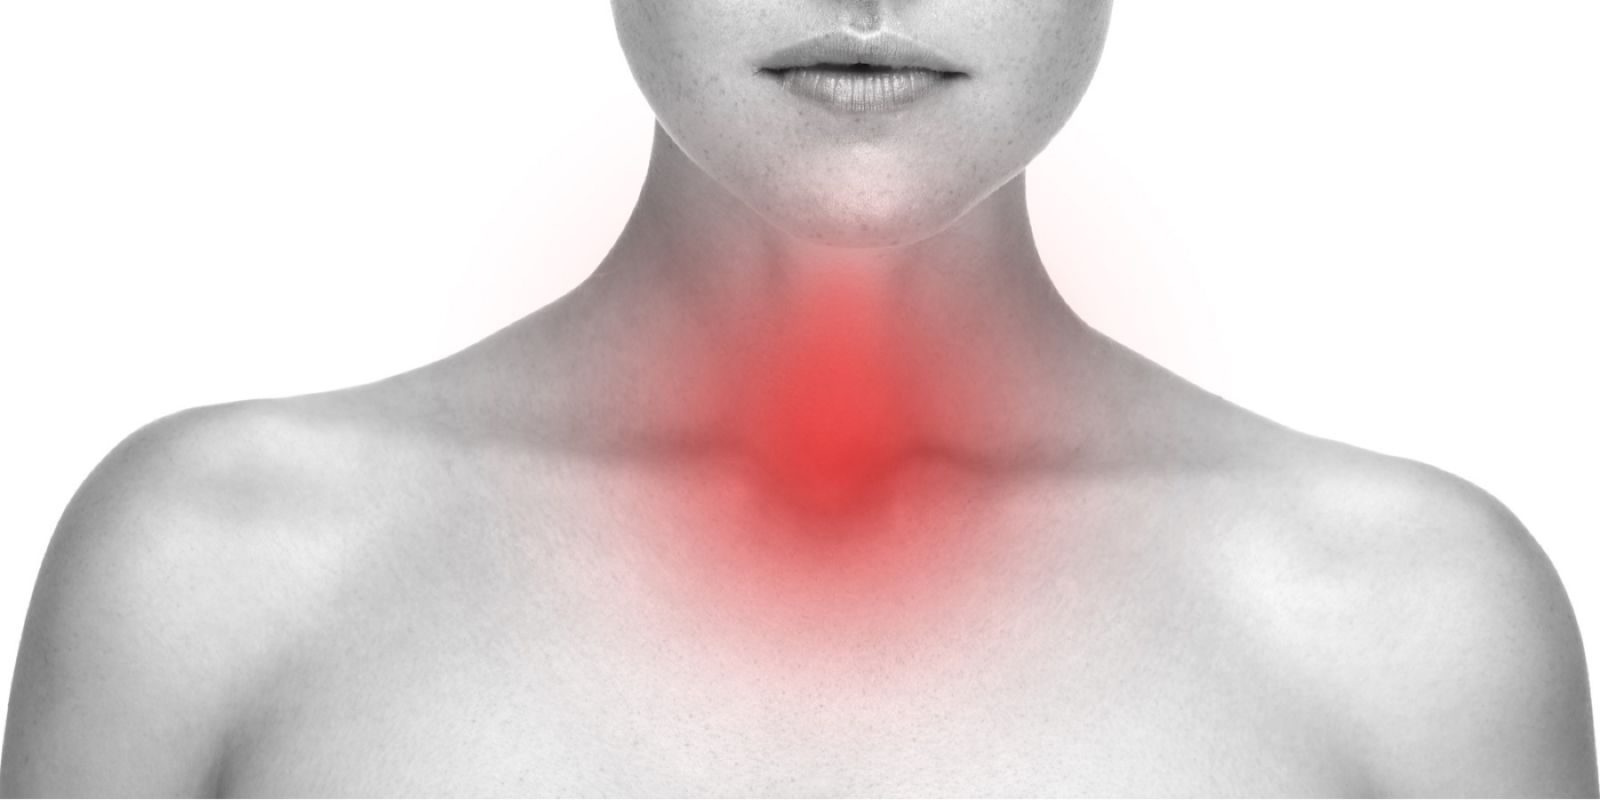 Thyroiditis-causes-symptoms-treatment